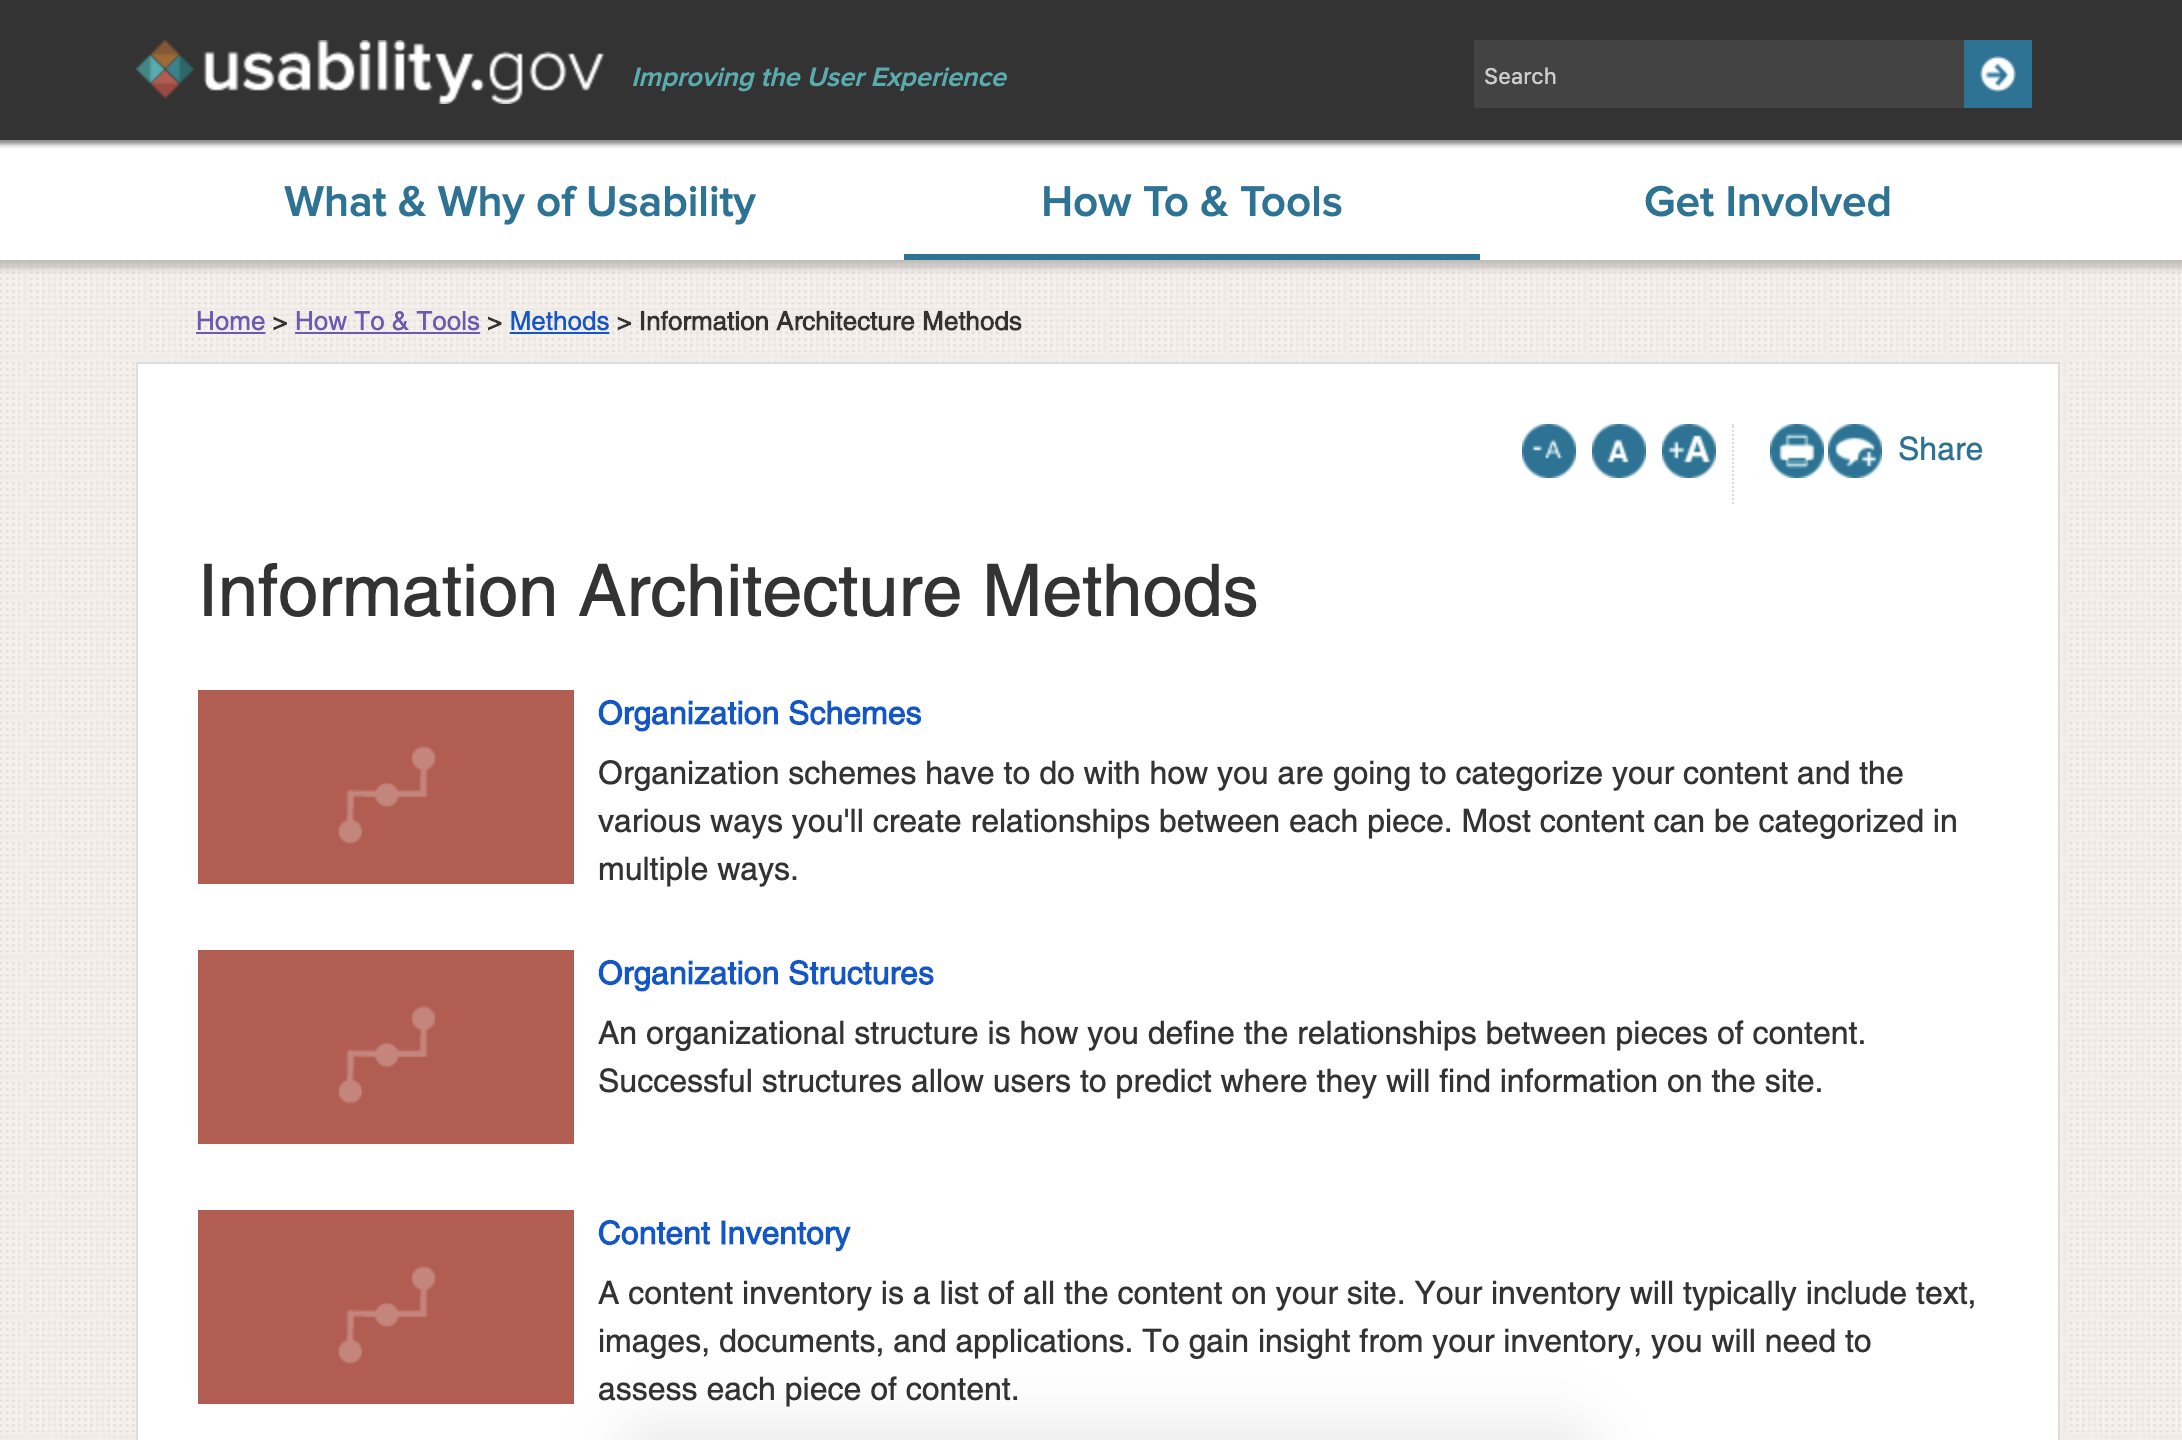 A screenshot from the usability.gov website showing a list of their resources on information architecture methods.